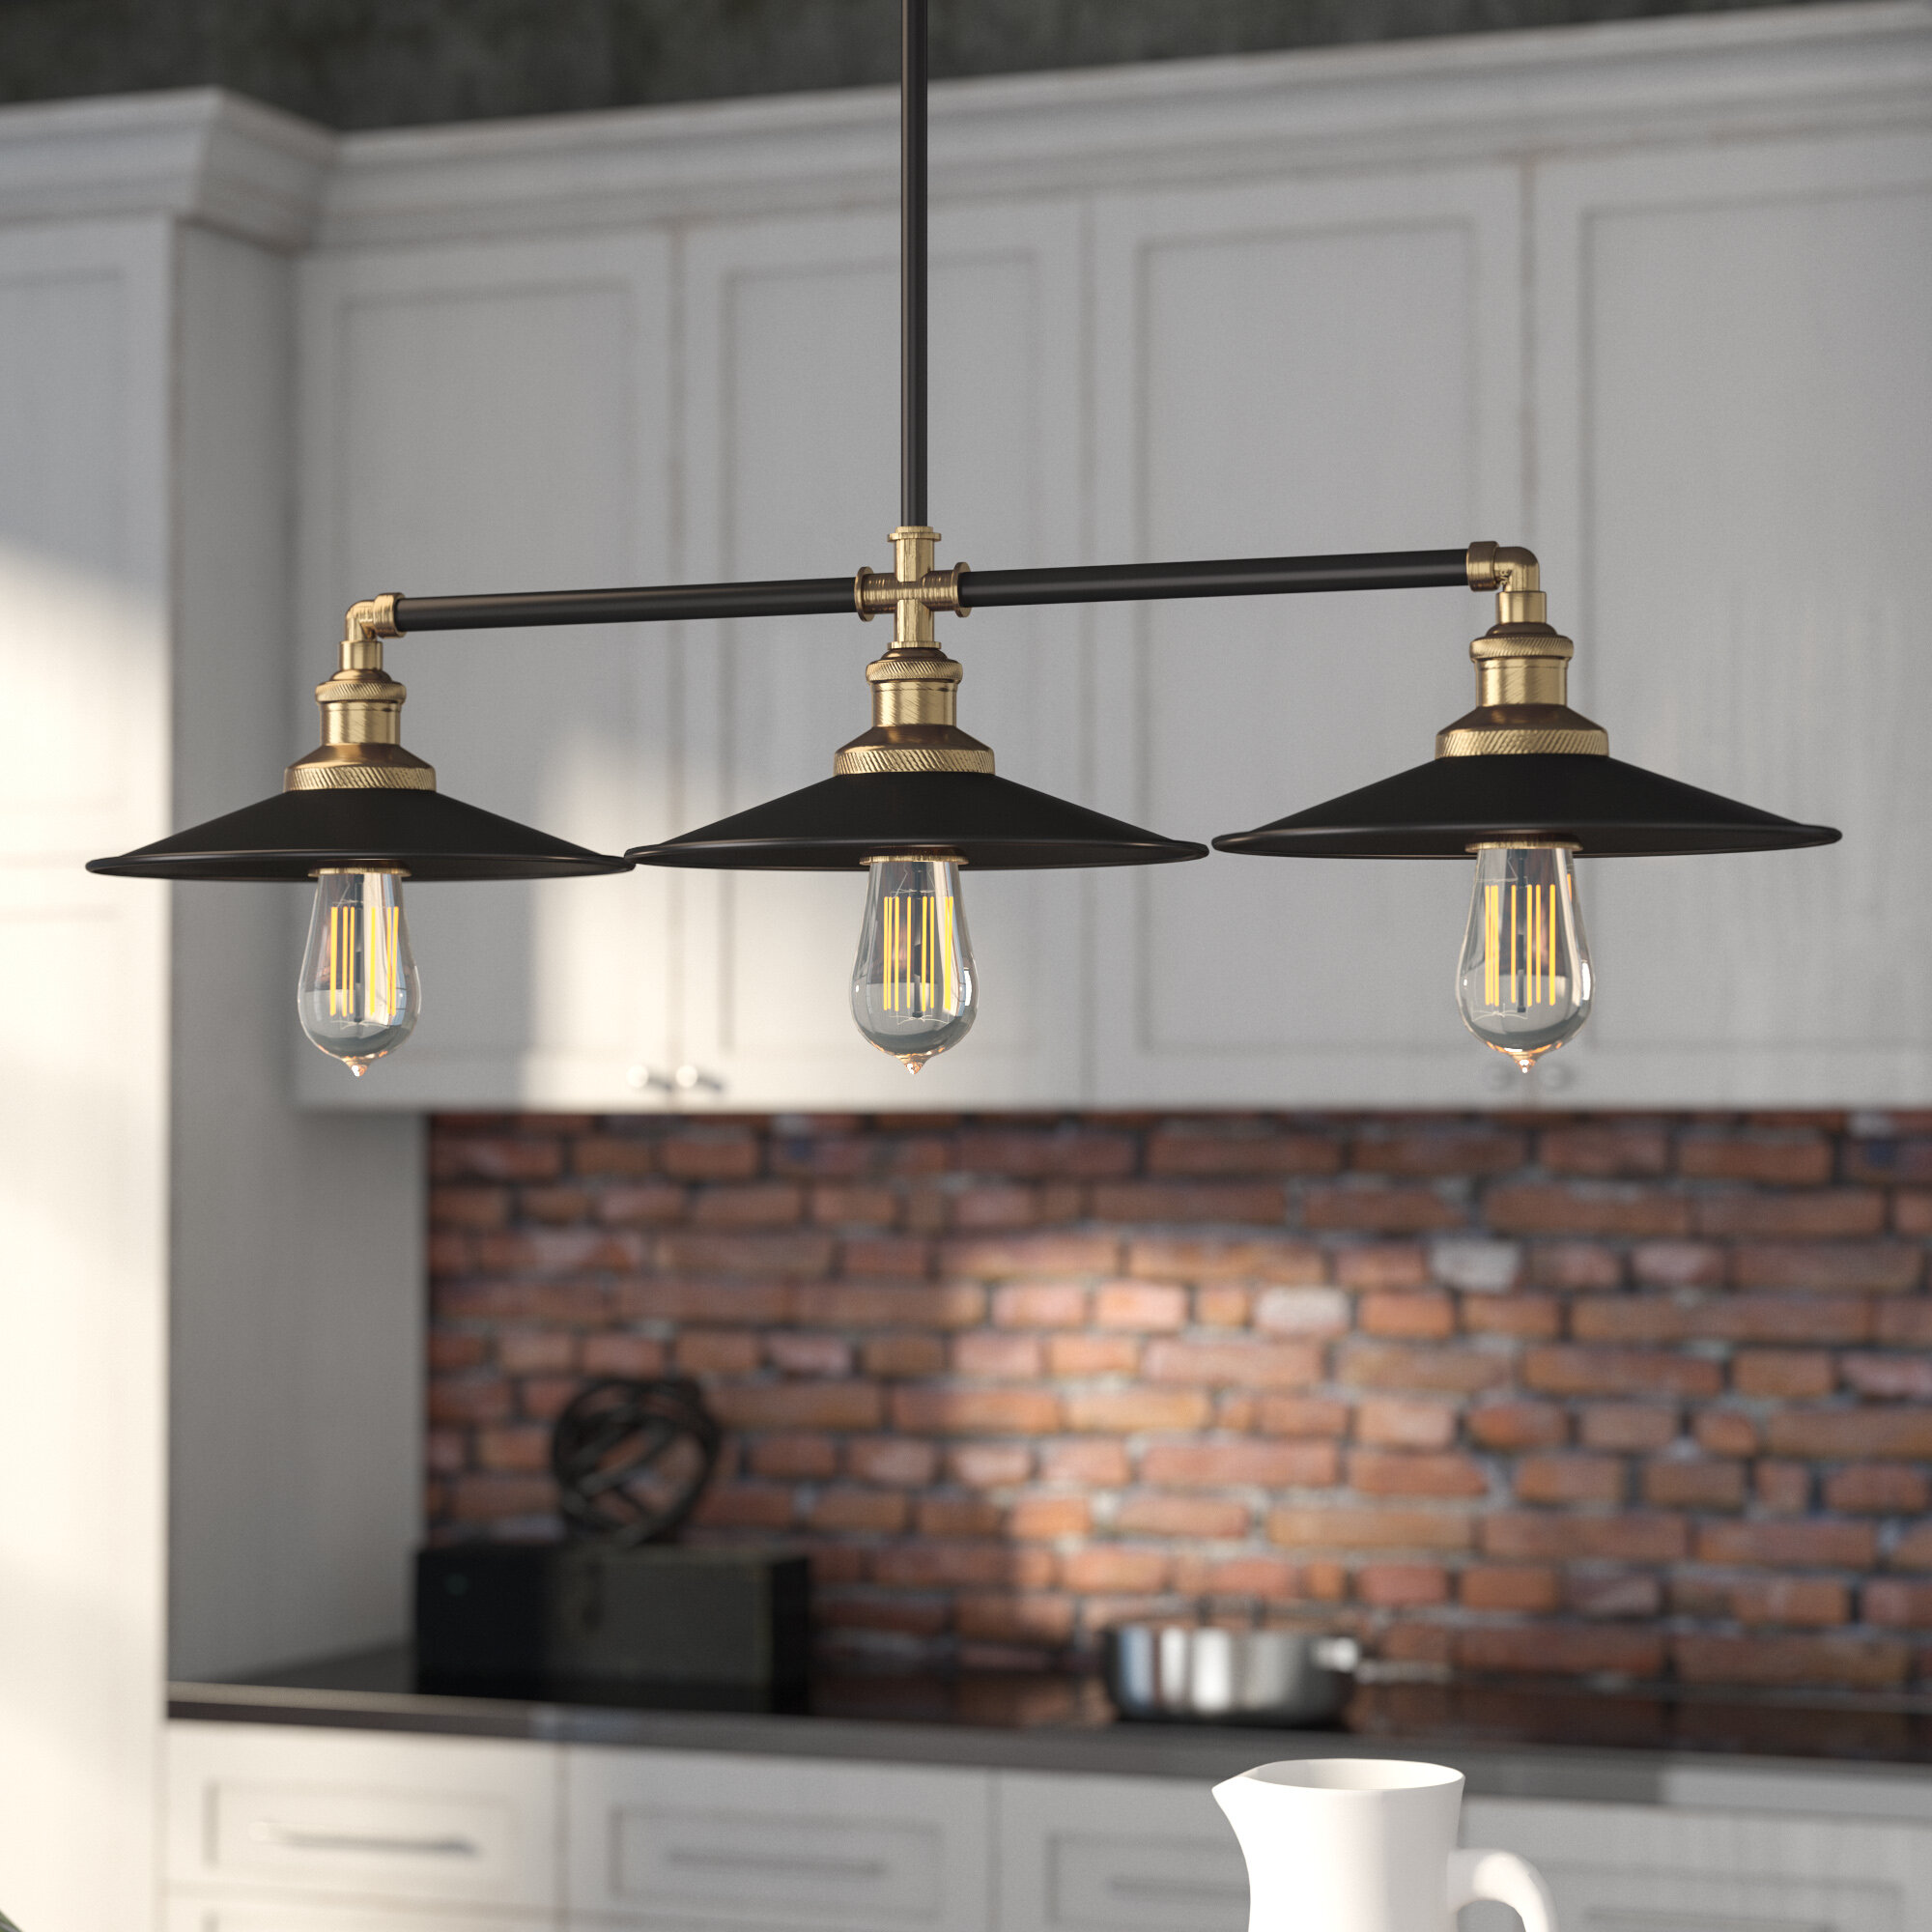 Trent Austin Design Dobson 3 Light Kitchen Island Pendant U0026 Reviews |  Wayfair